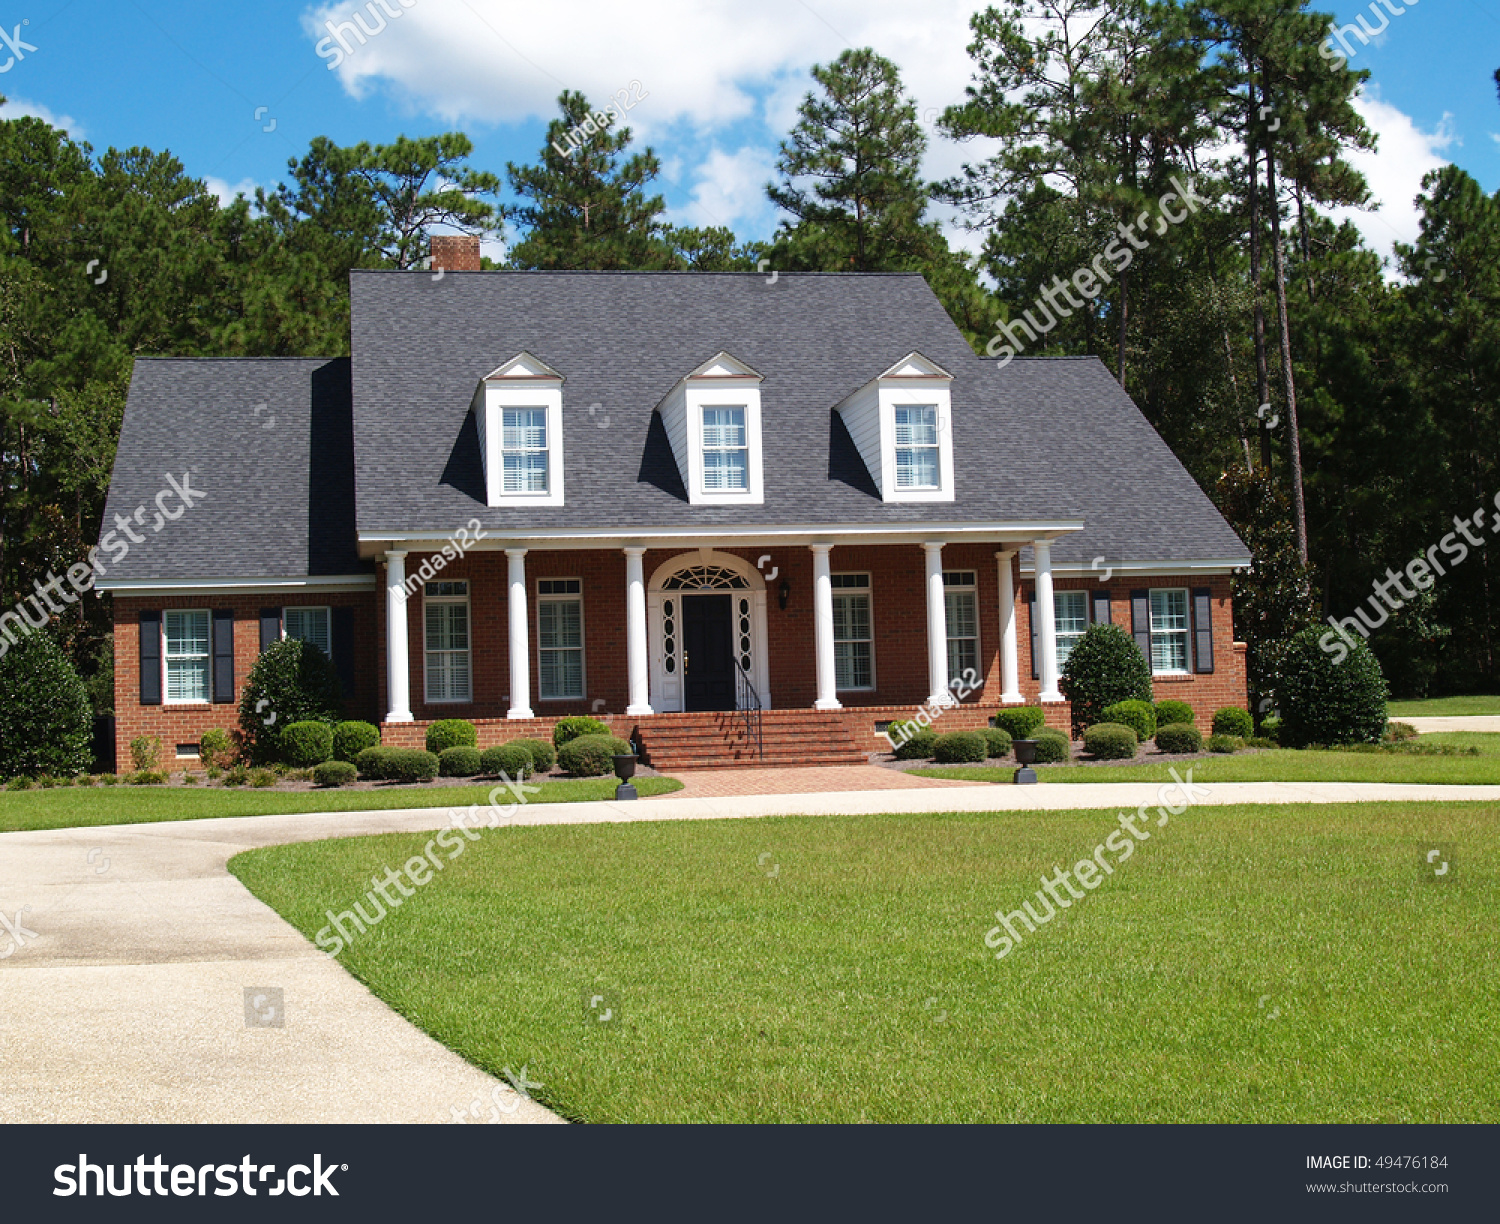 Two story brick residential home with large front porch for House with side garage